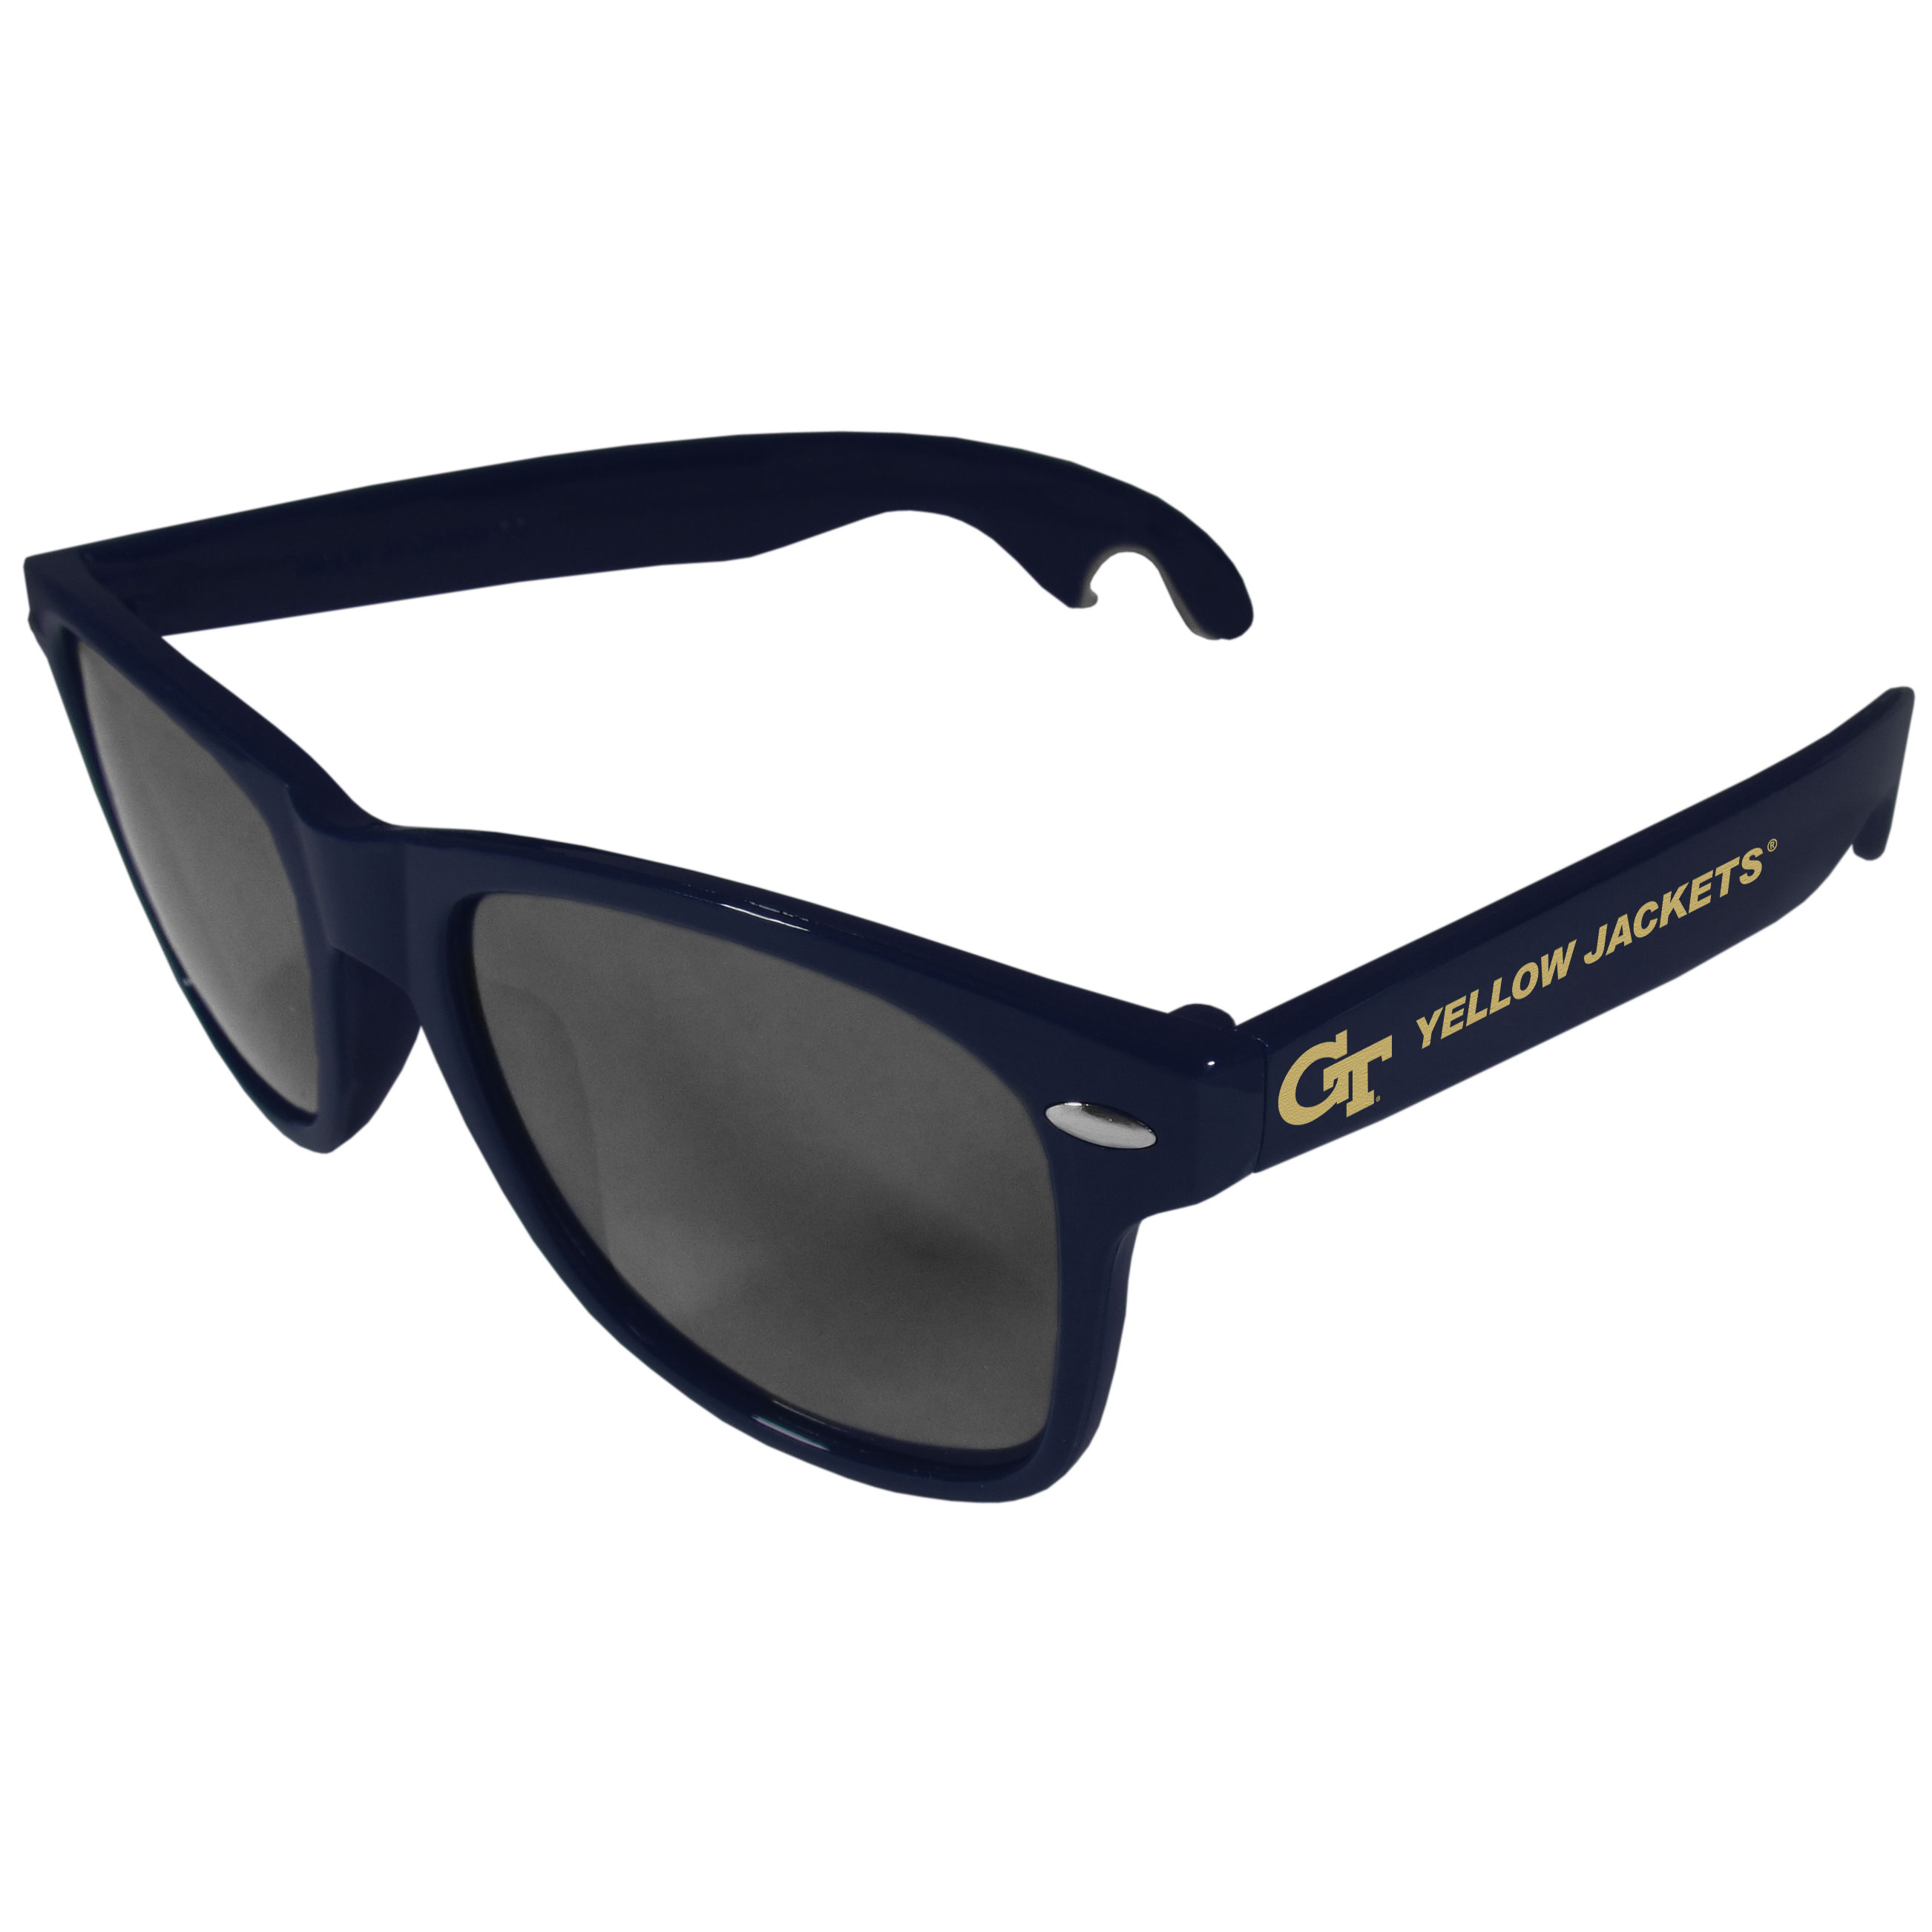 Georgia Tech Yellow Jackets Beachfarer Bottle Opener Sunglasses, Dark Blue - Seriously, these sunglasses open bottles! Keep the party going with these amazing Georgia Tech Yellow Jackets bottle opener sunglasses. The stylish retro frames feature team designs on the arms and functional bottle openers on the end of the arms. Whether you are at the beach or having a backyard BBQ on game day, these shades will keep your eyes protected with 100% UVA/UVB protection and keep you hydrated with the handy bottle opener arms.